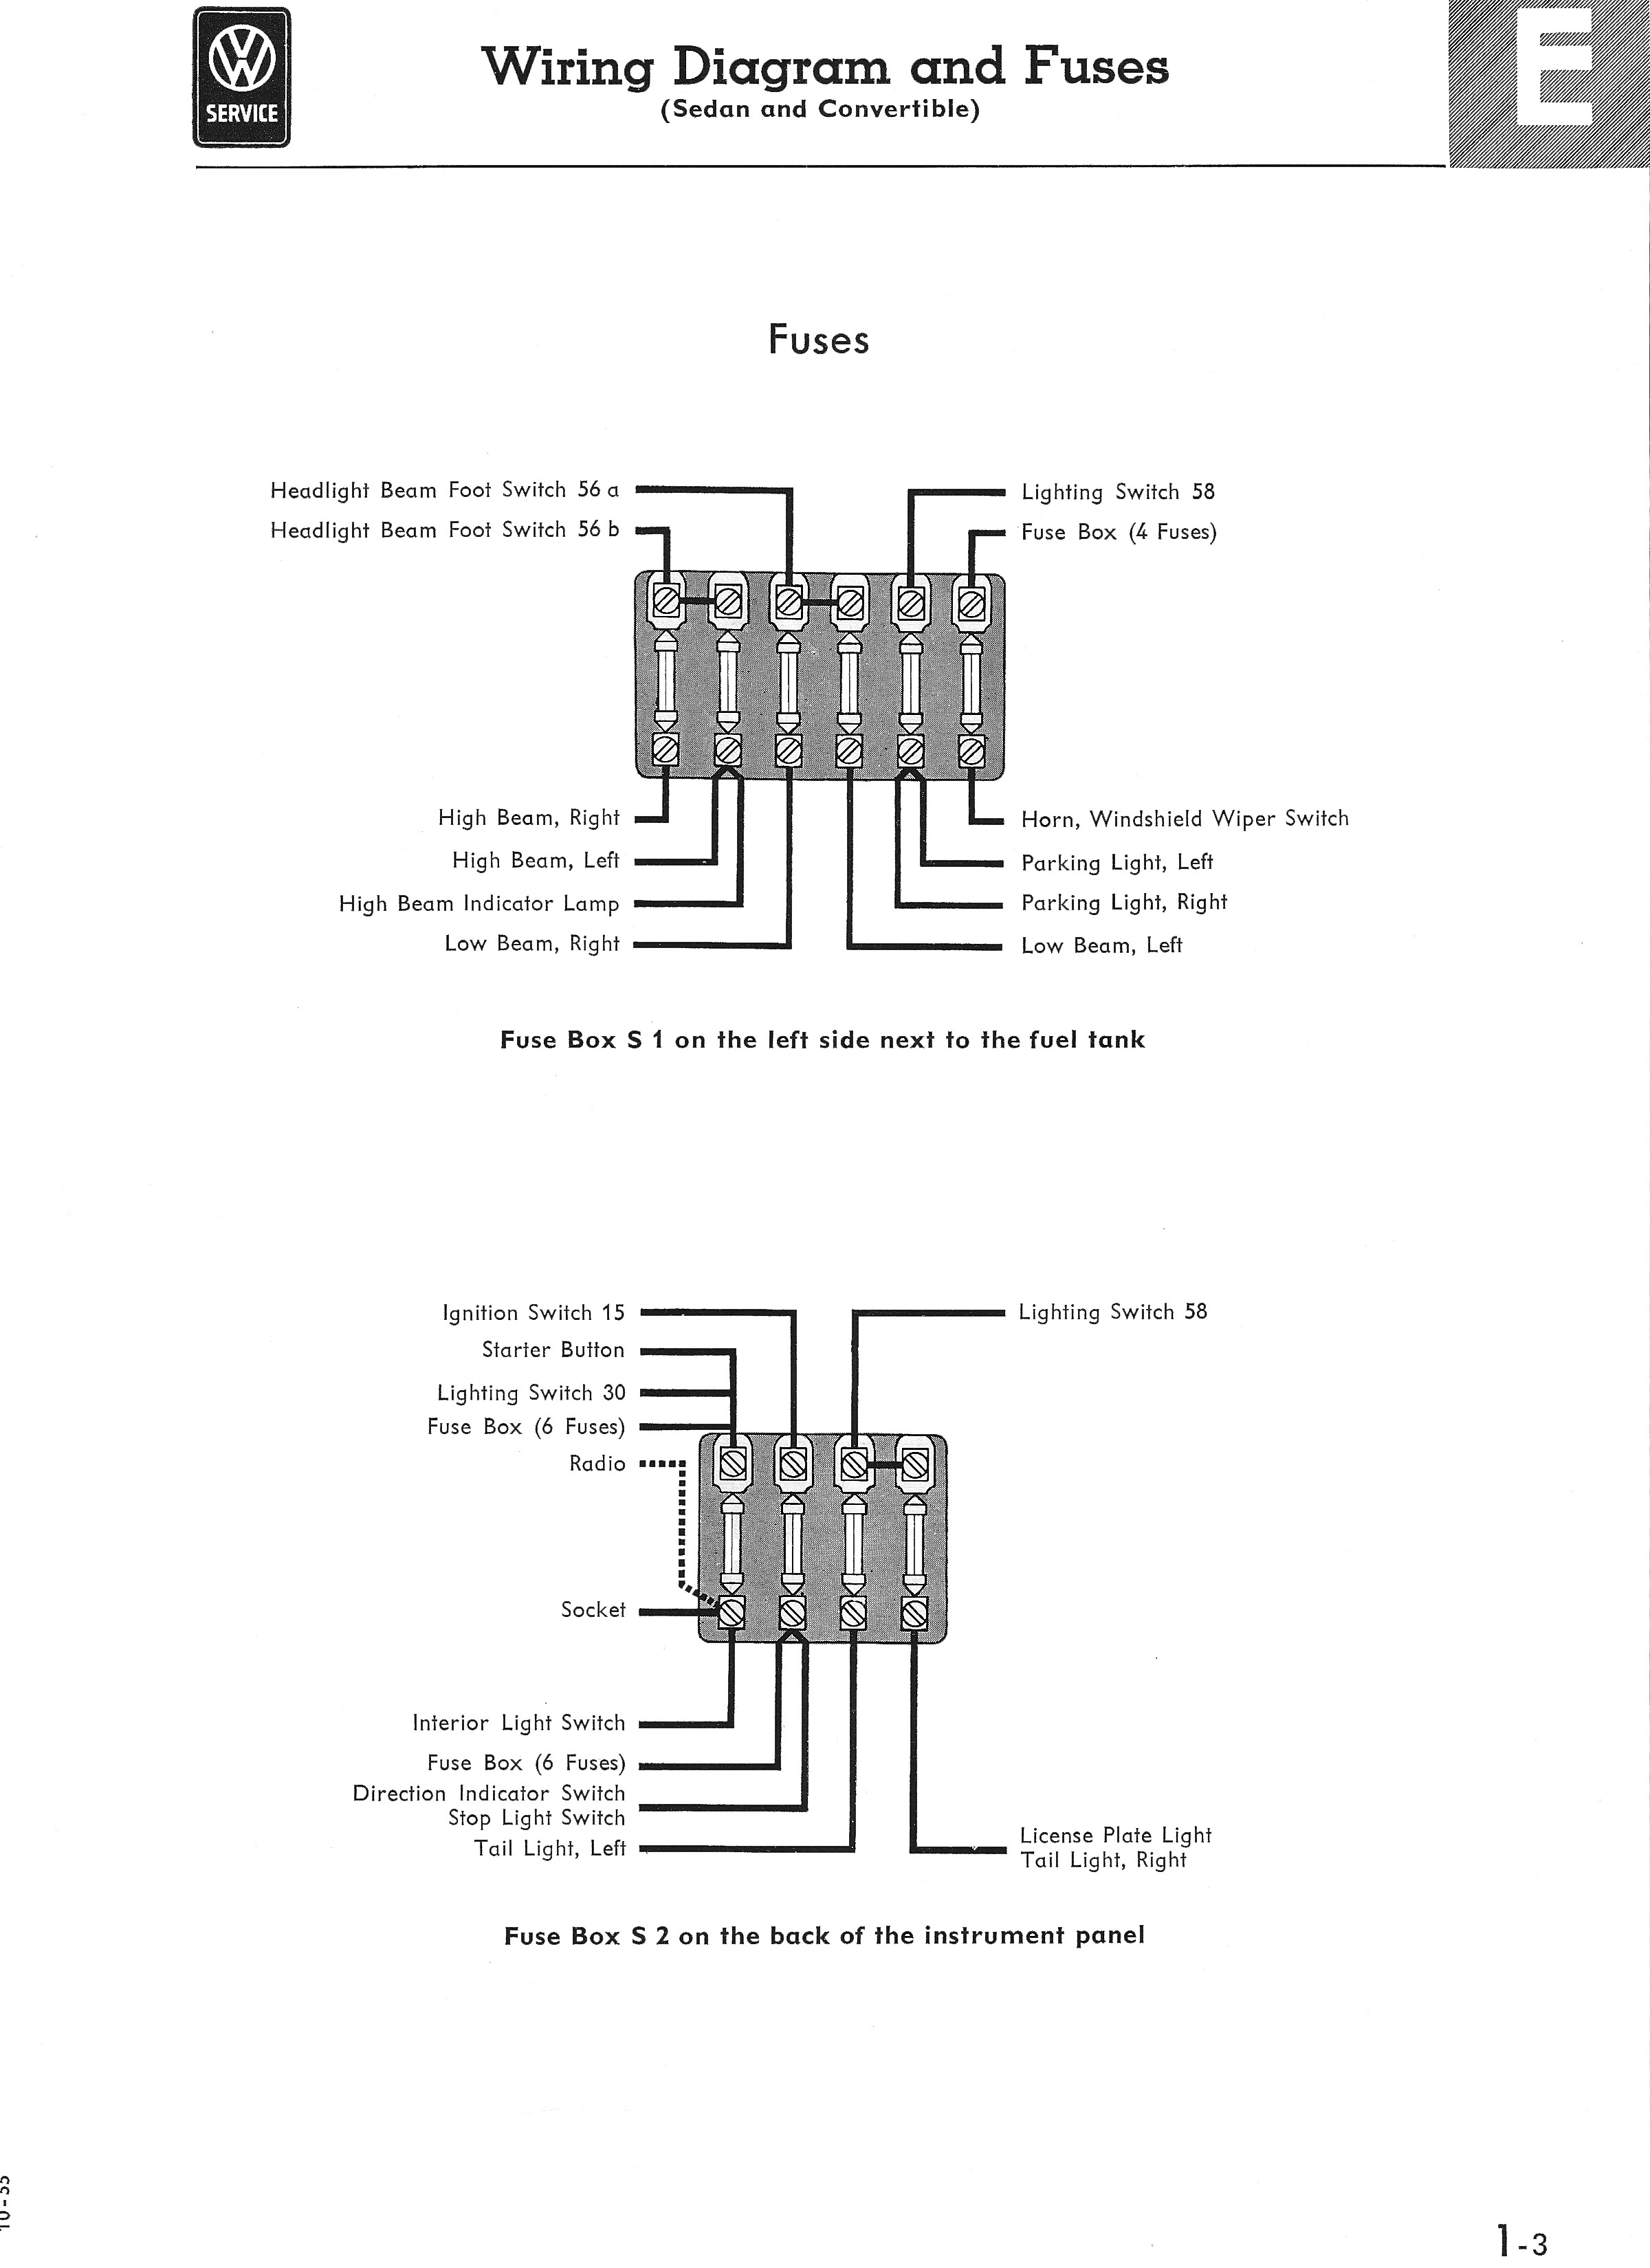 Type 1 Wiring Diagrams 1974 Pontiac Diagram